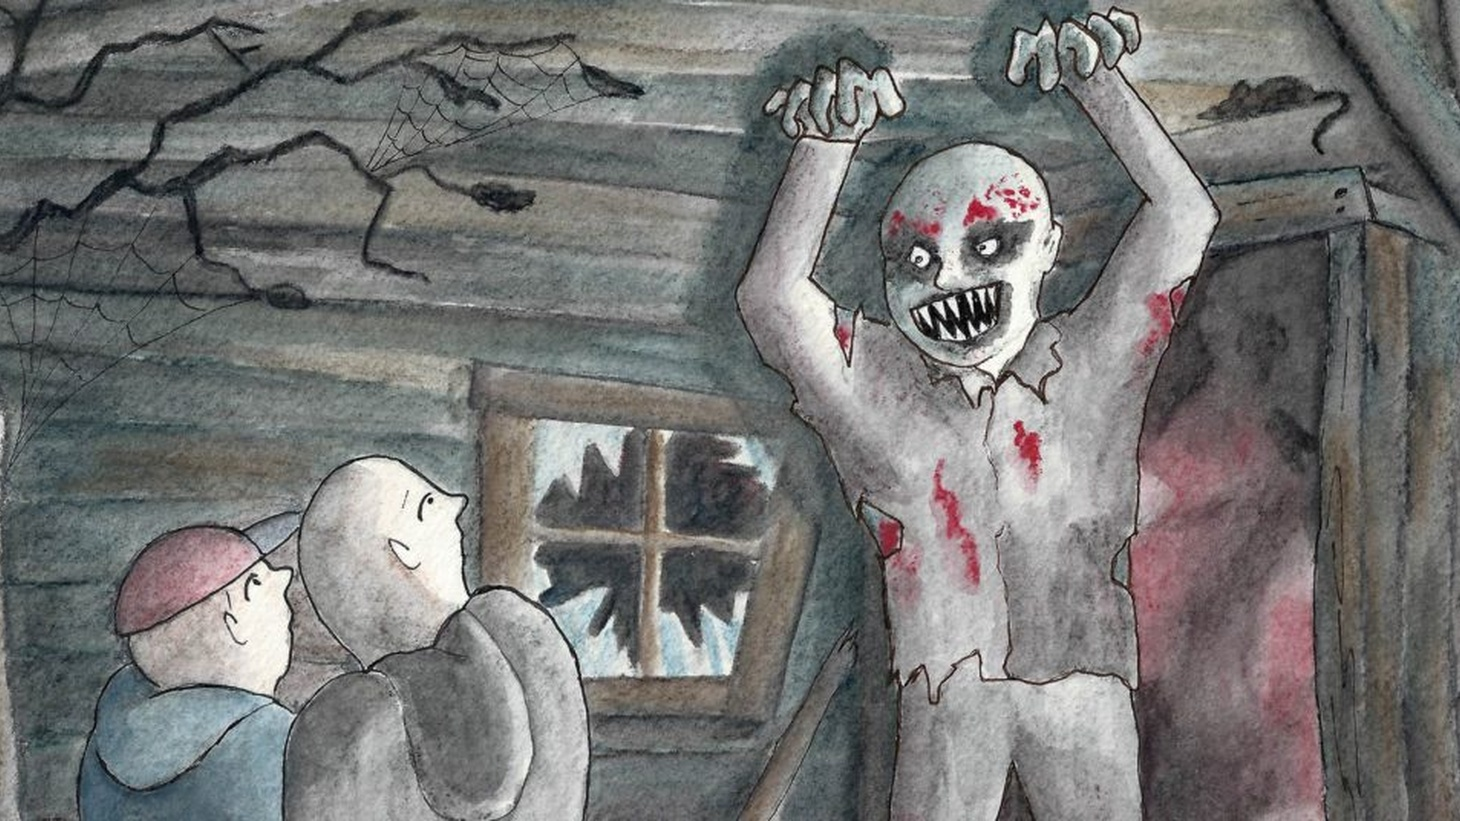 Getting into character and scaring people silly is one of Campbell Harmon's favorite things in life. But his relationship to being a monster goes deeper than playing one in a haunted attraction.